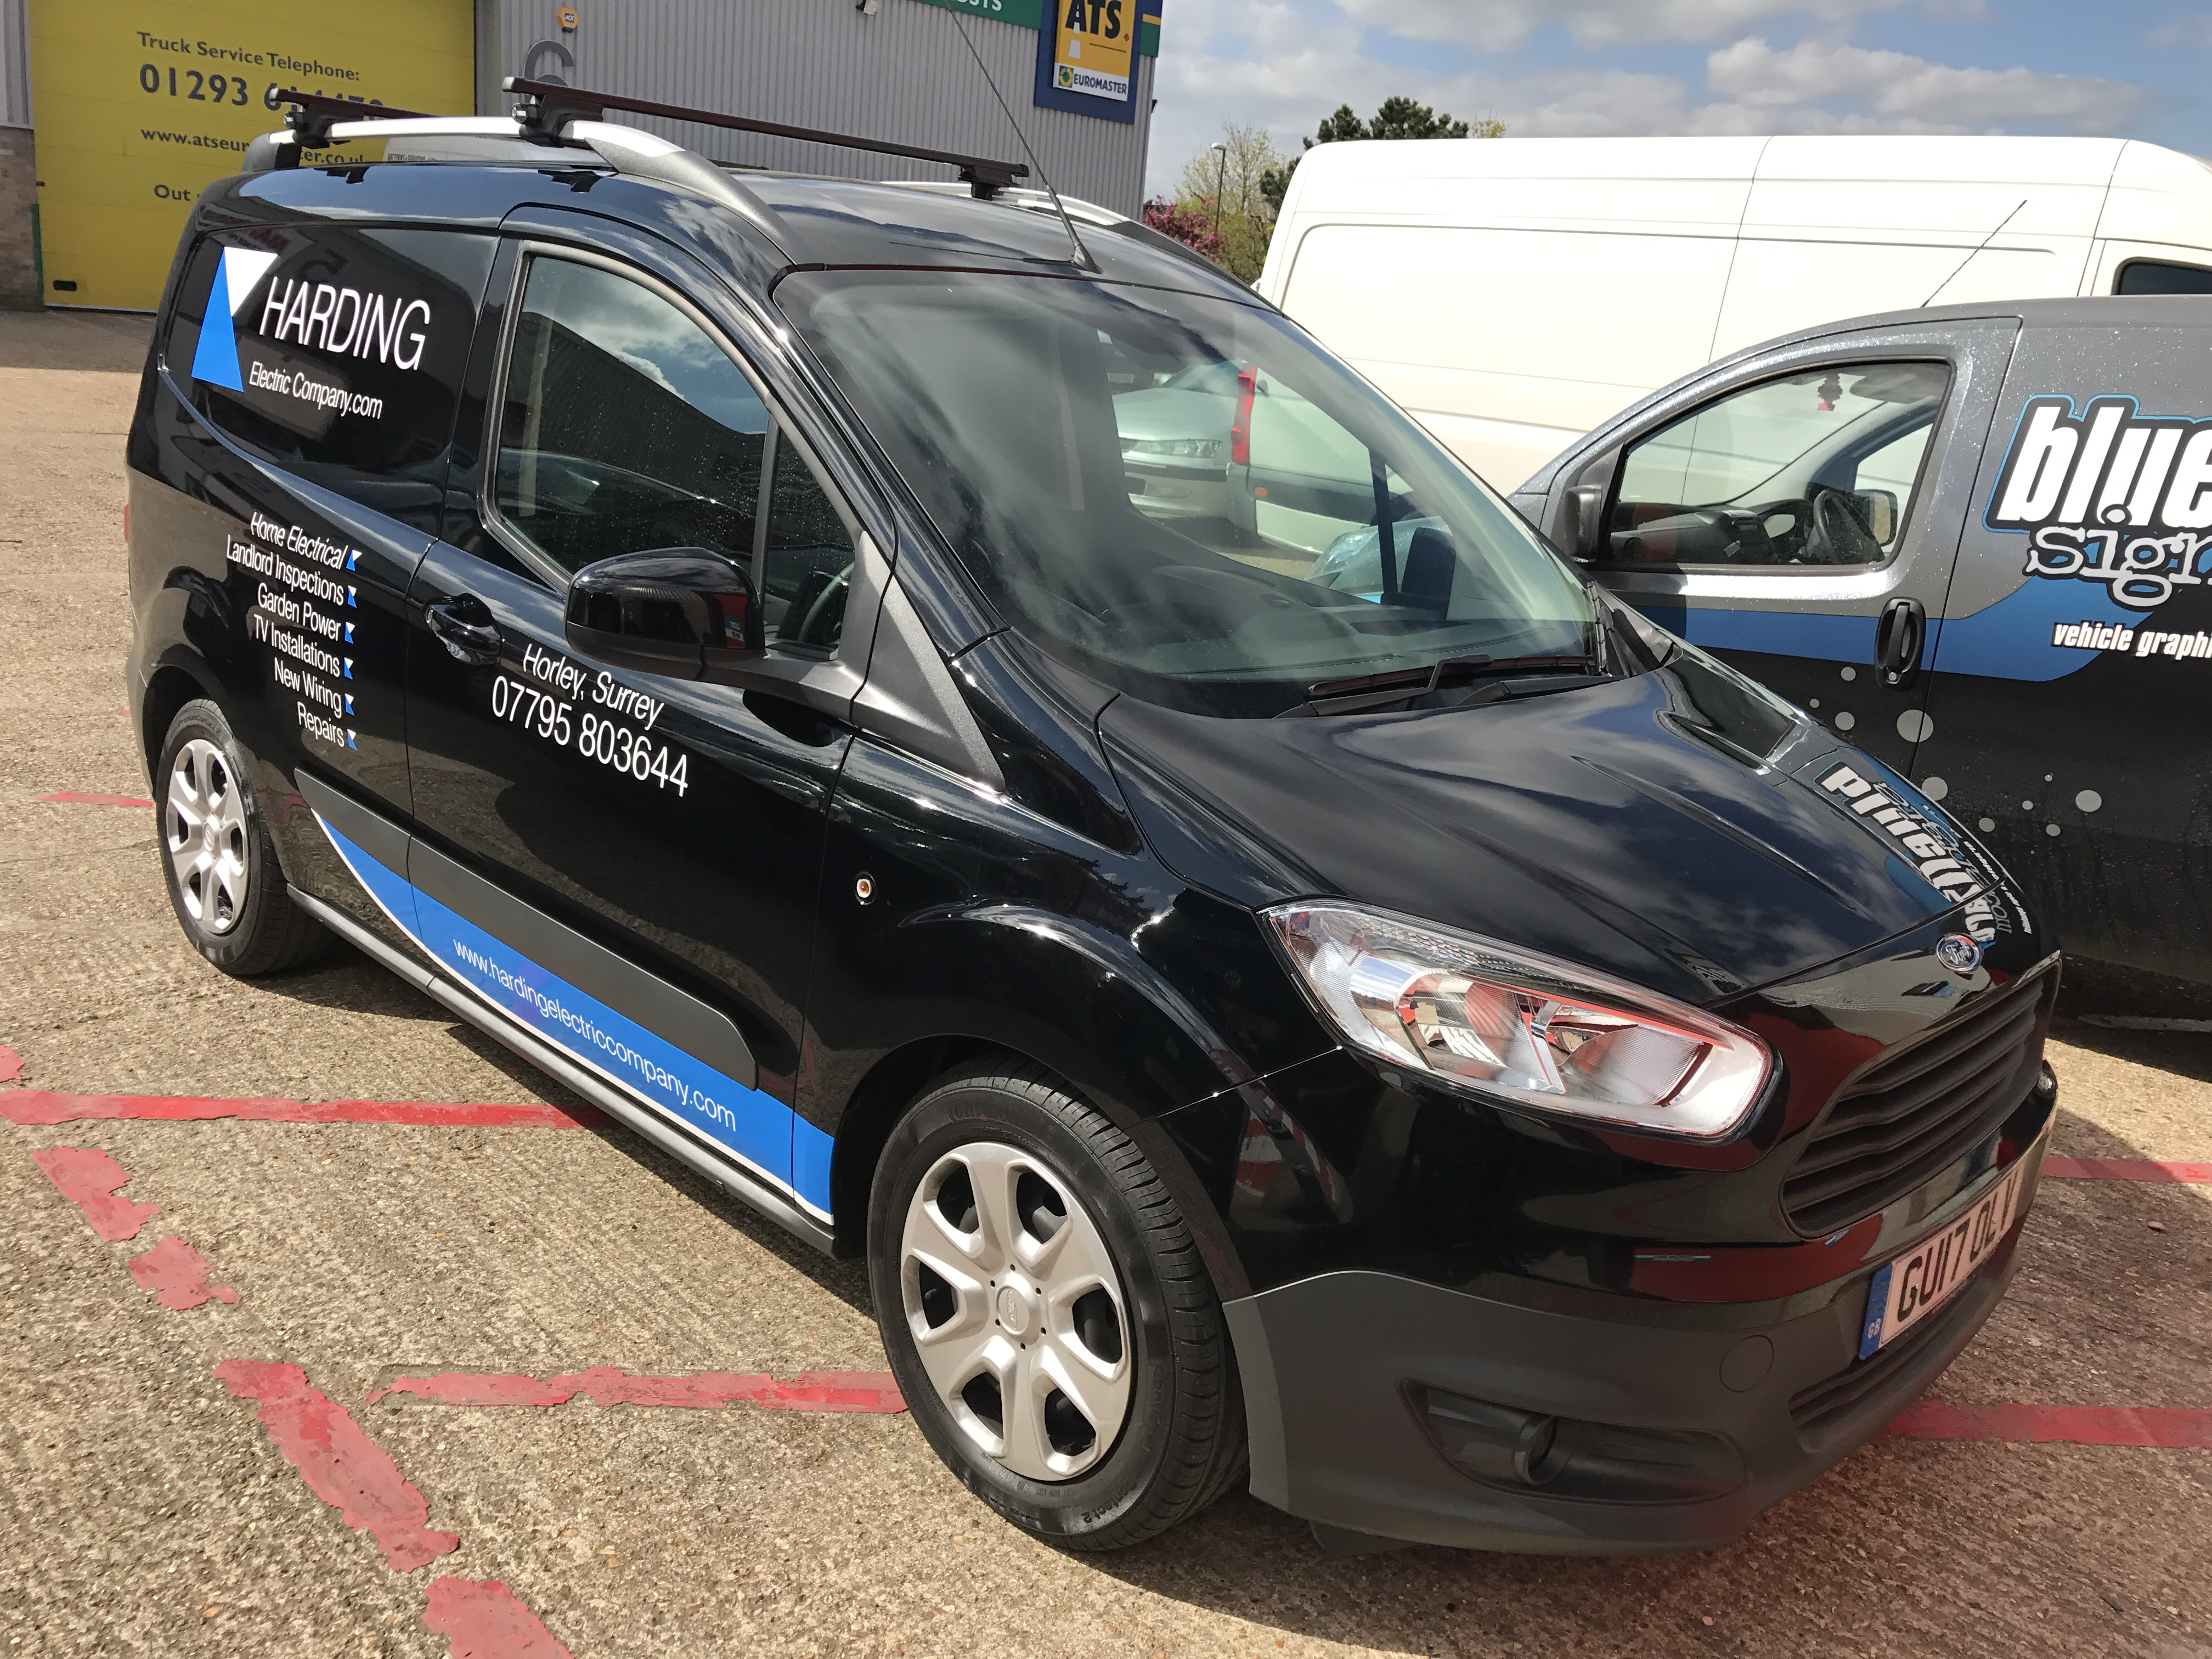 HARDINGS ELECTRIC CONNECT VAN